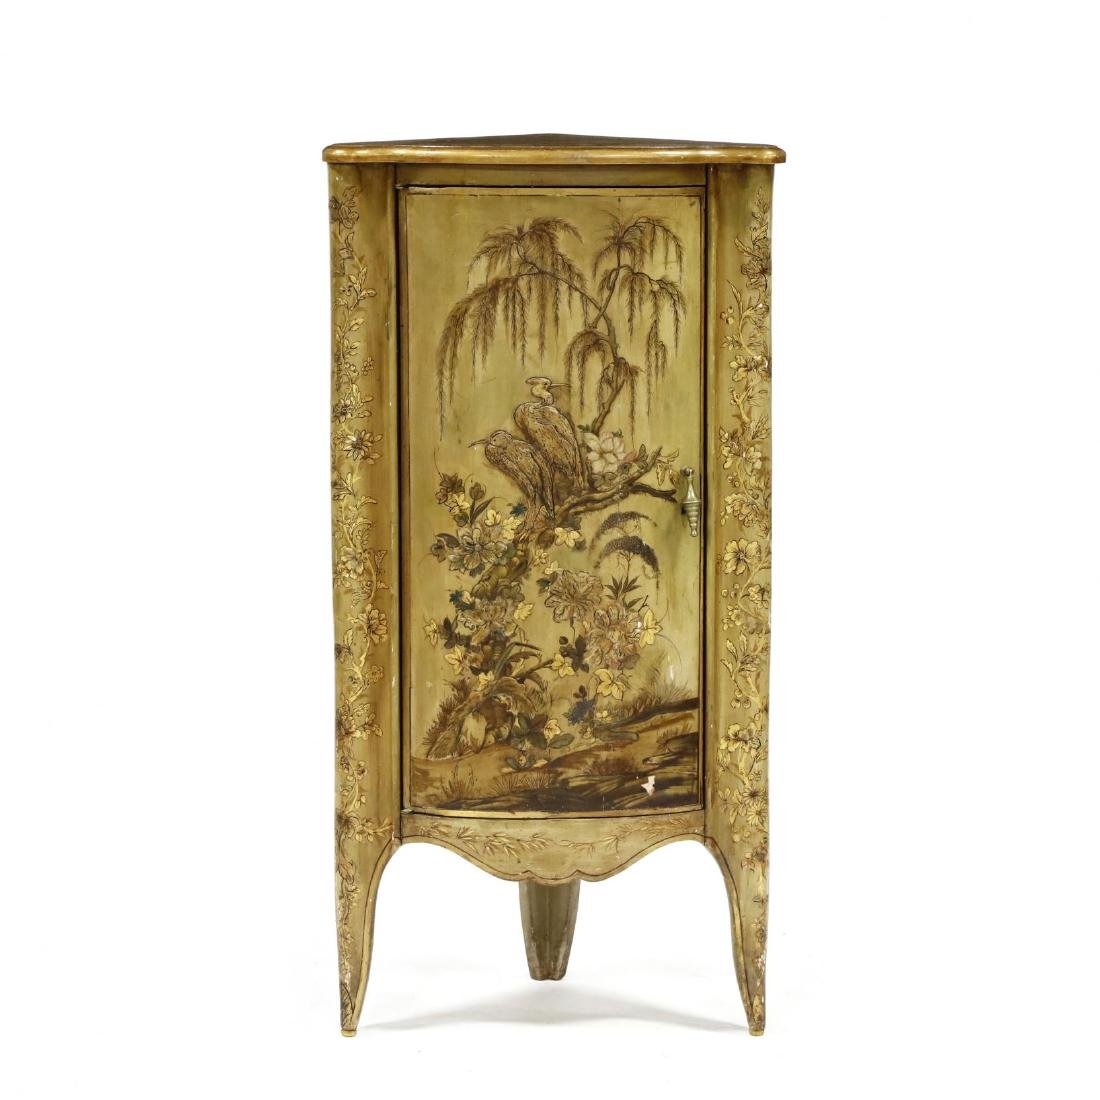 Chinoiserie Decorated Diminutive Corner Cabinet